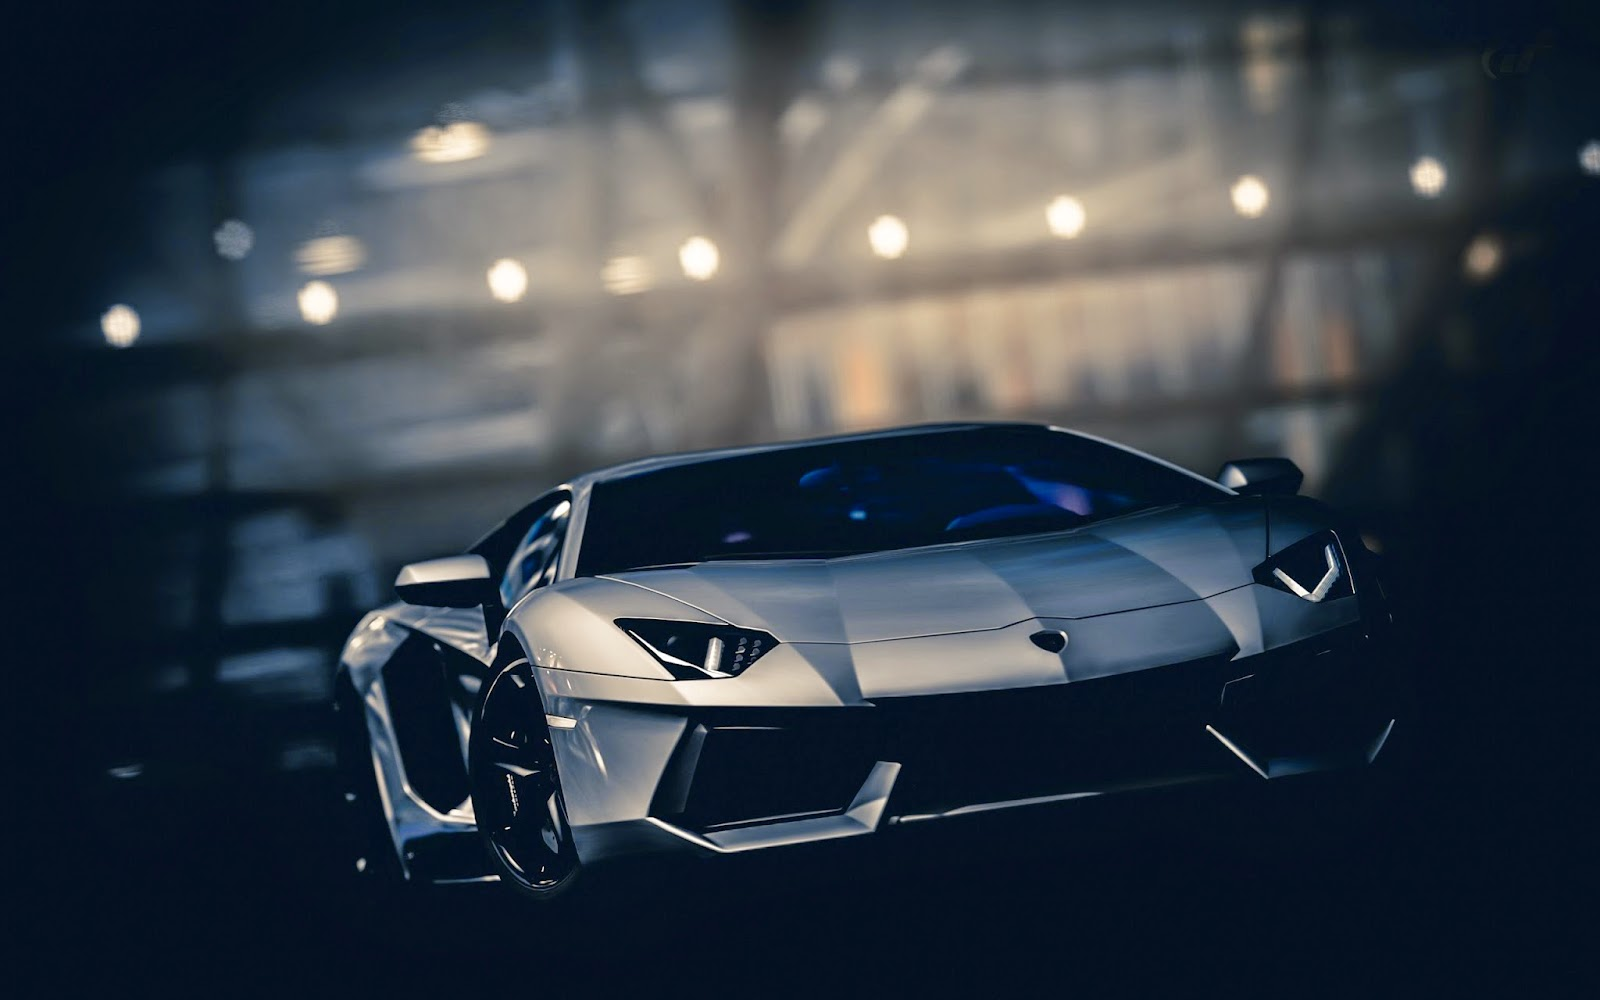 Kumpulan Wallpaper Android Lamborghini Keren Stok Wallpaper